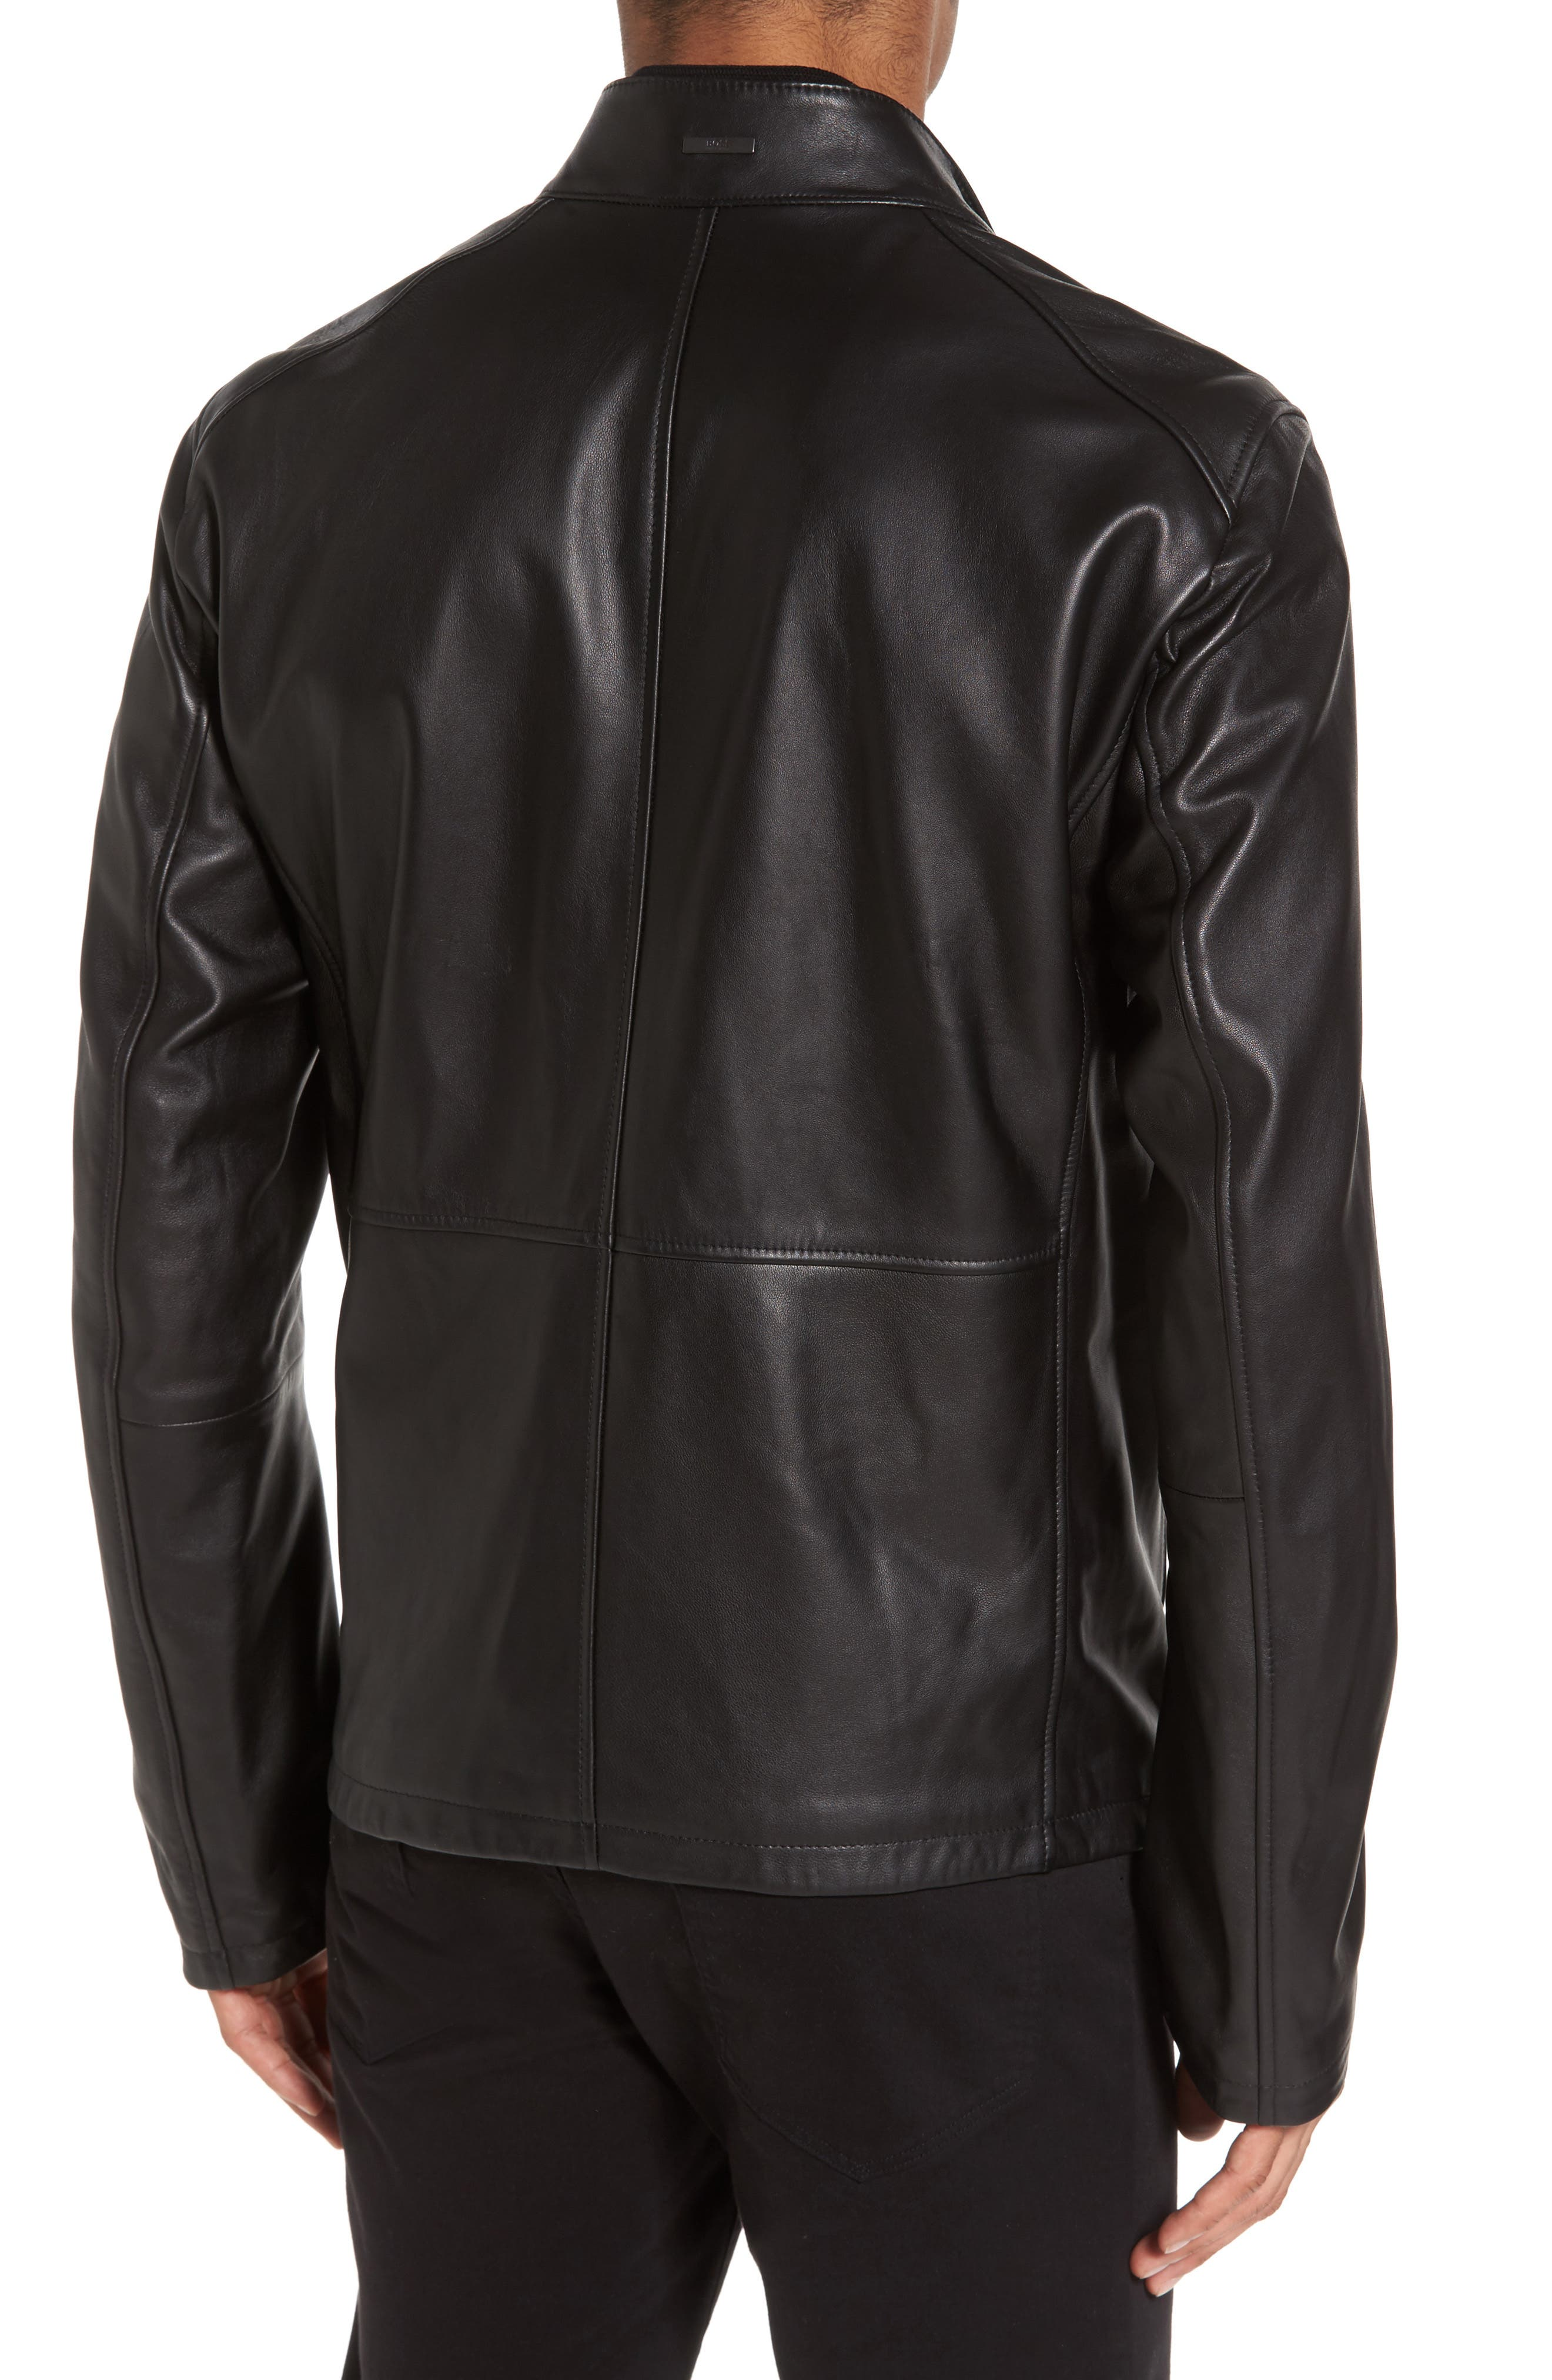 Collar Inset Leather Jacket,                             Alternate thumbnail 2, color,                             001